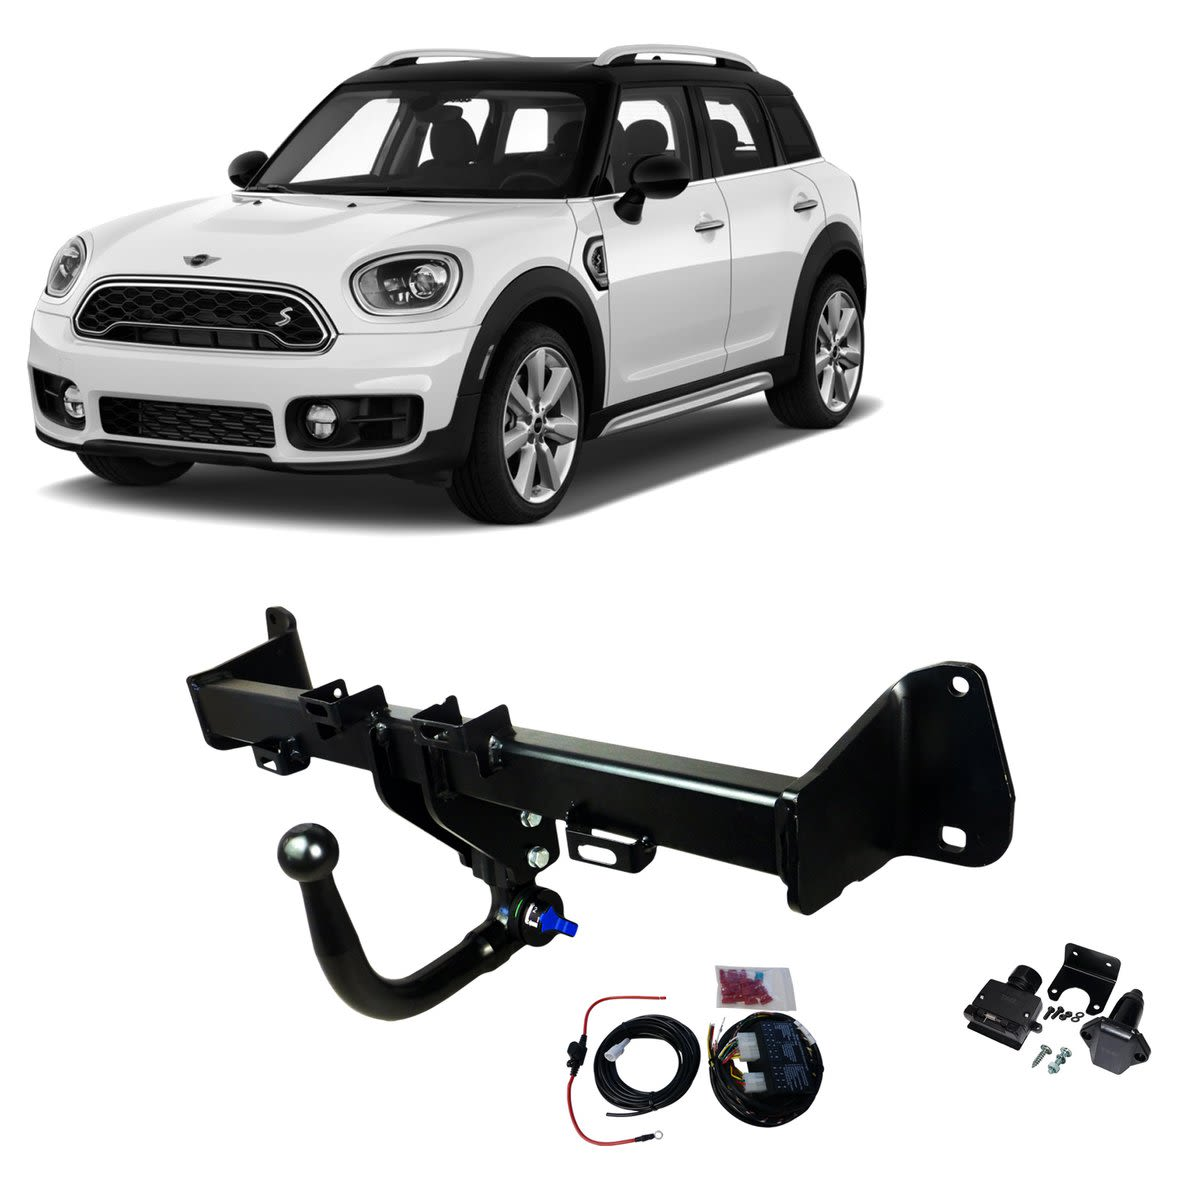 TAG Towbars European Style Tongue to suit Mini Cooper (11/2015 - 01/2019), Cooper S (11/2015 - 01/2019), Countryman (02/2017 - on)